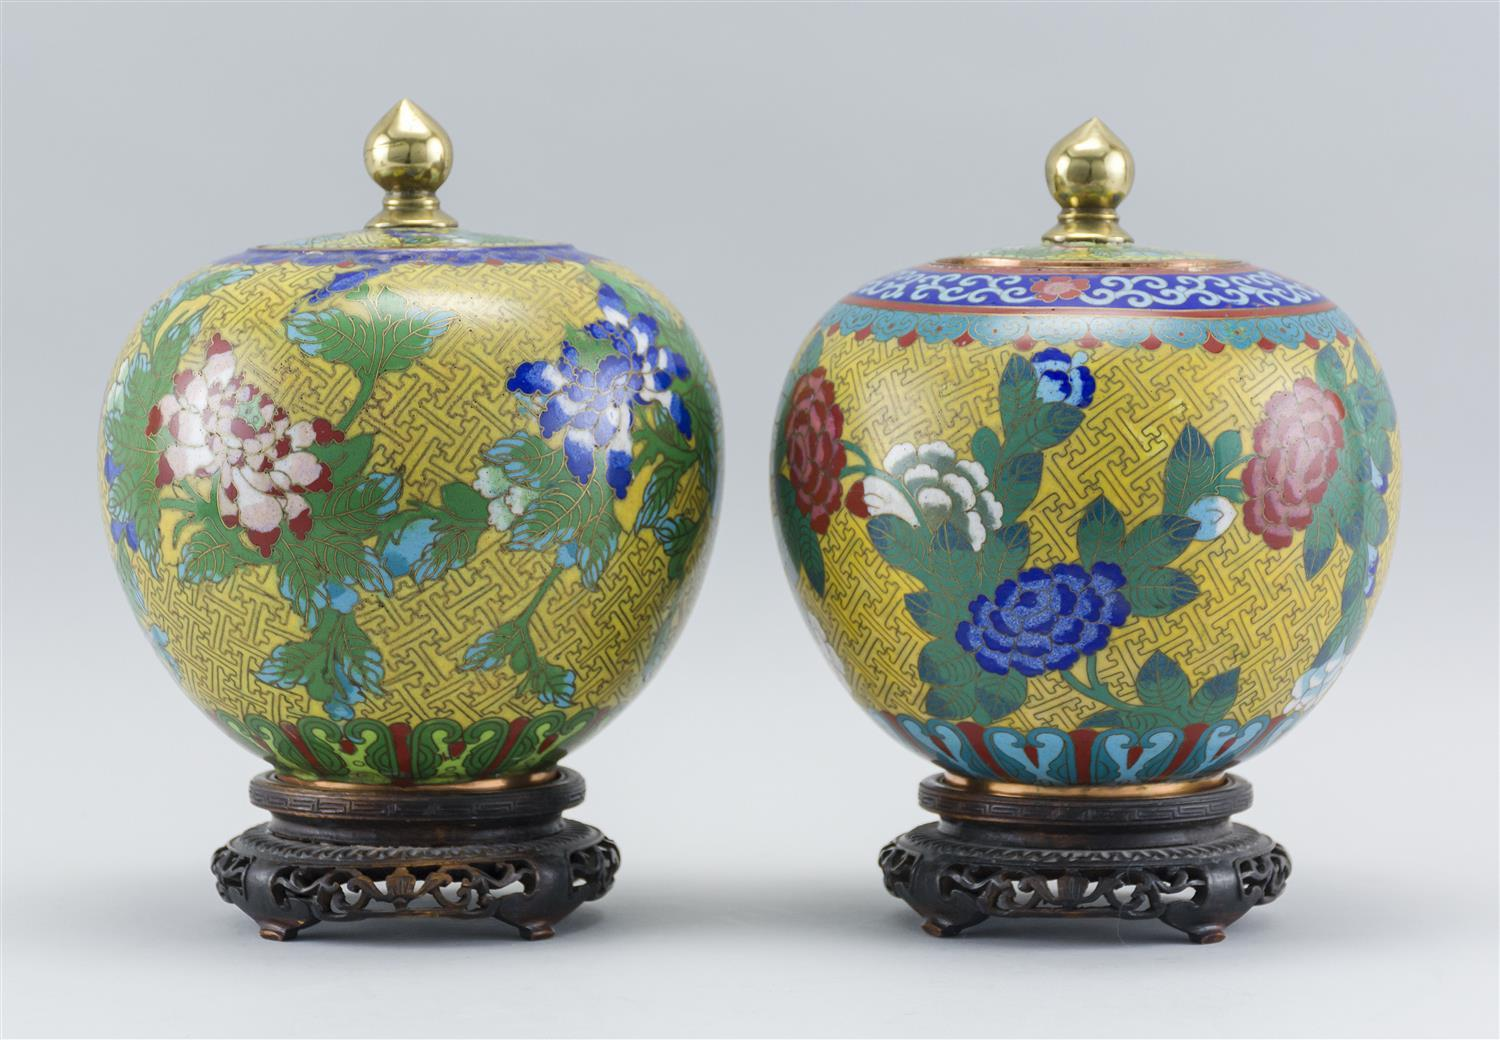 """PAIR OF CHINESE CLOISONNÉ ENAMEL COVERED JARS In ovoid form, with a floral design on a yellow fretwork ground. Heights 7.5"""". Include..."""